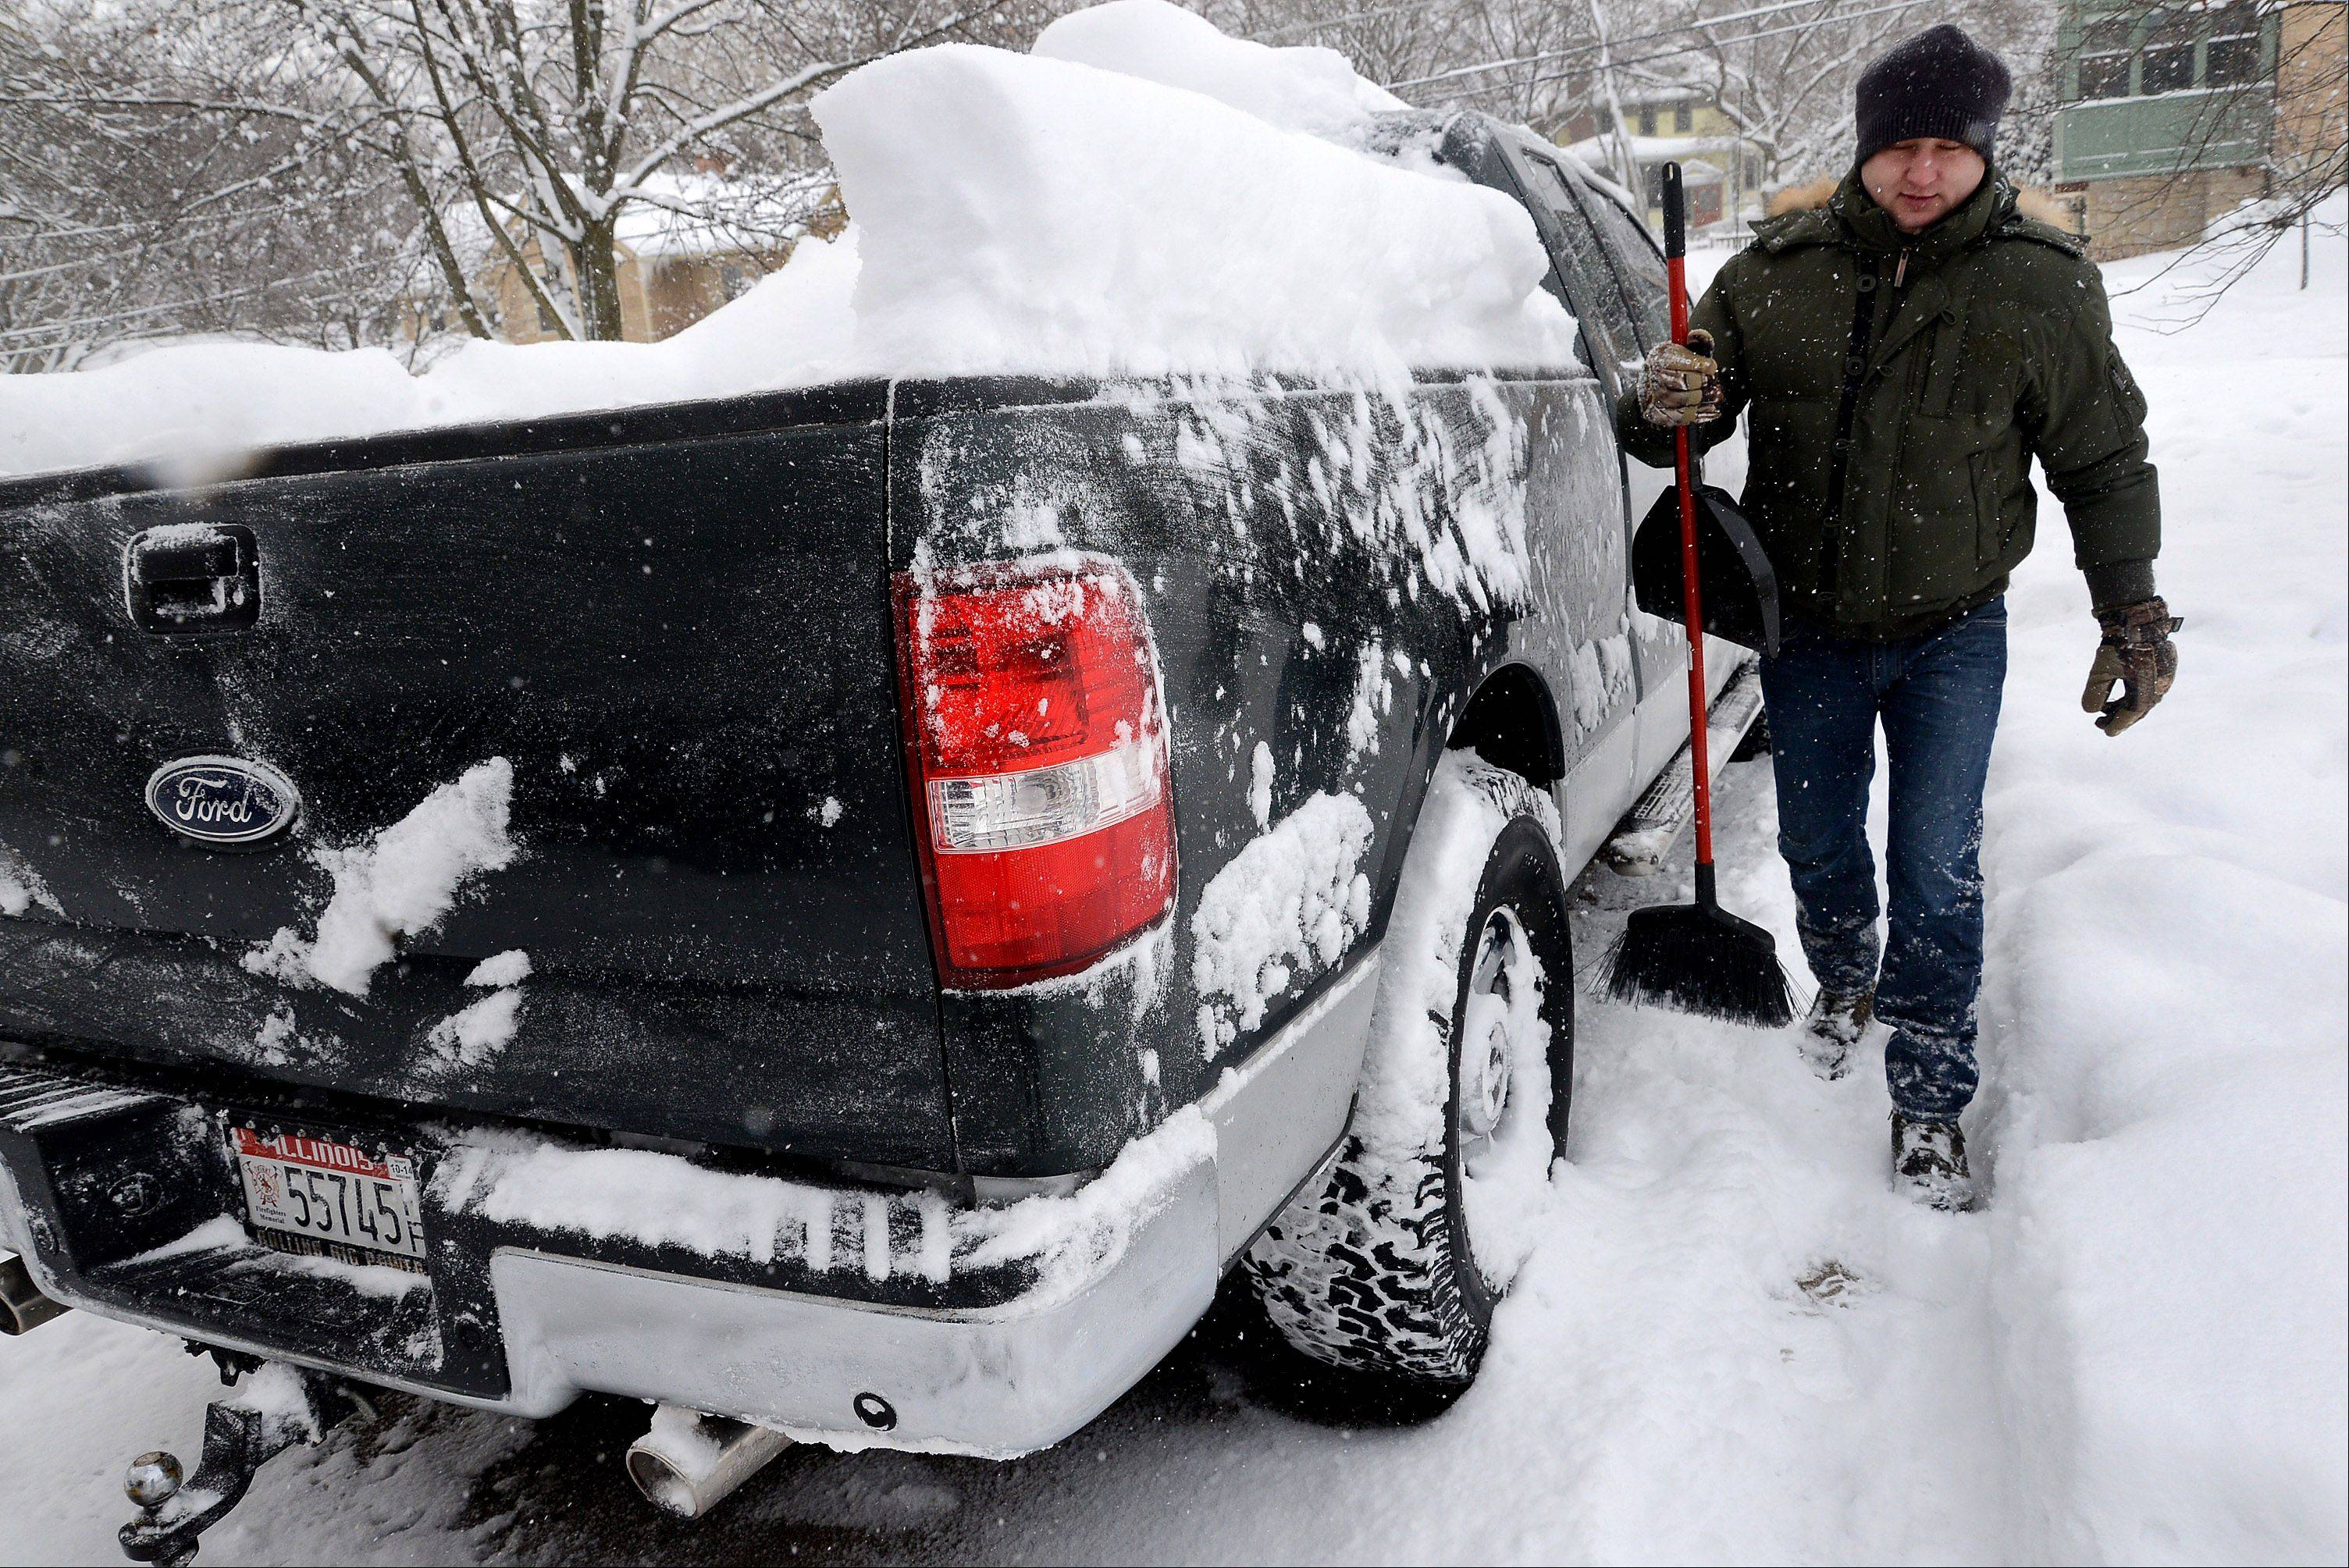 David Paluch brushes off snow from his truck in front of his home on Station Street in downtown Barrington in preparation to take his family sledding.